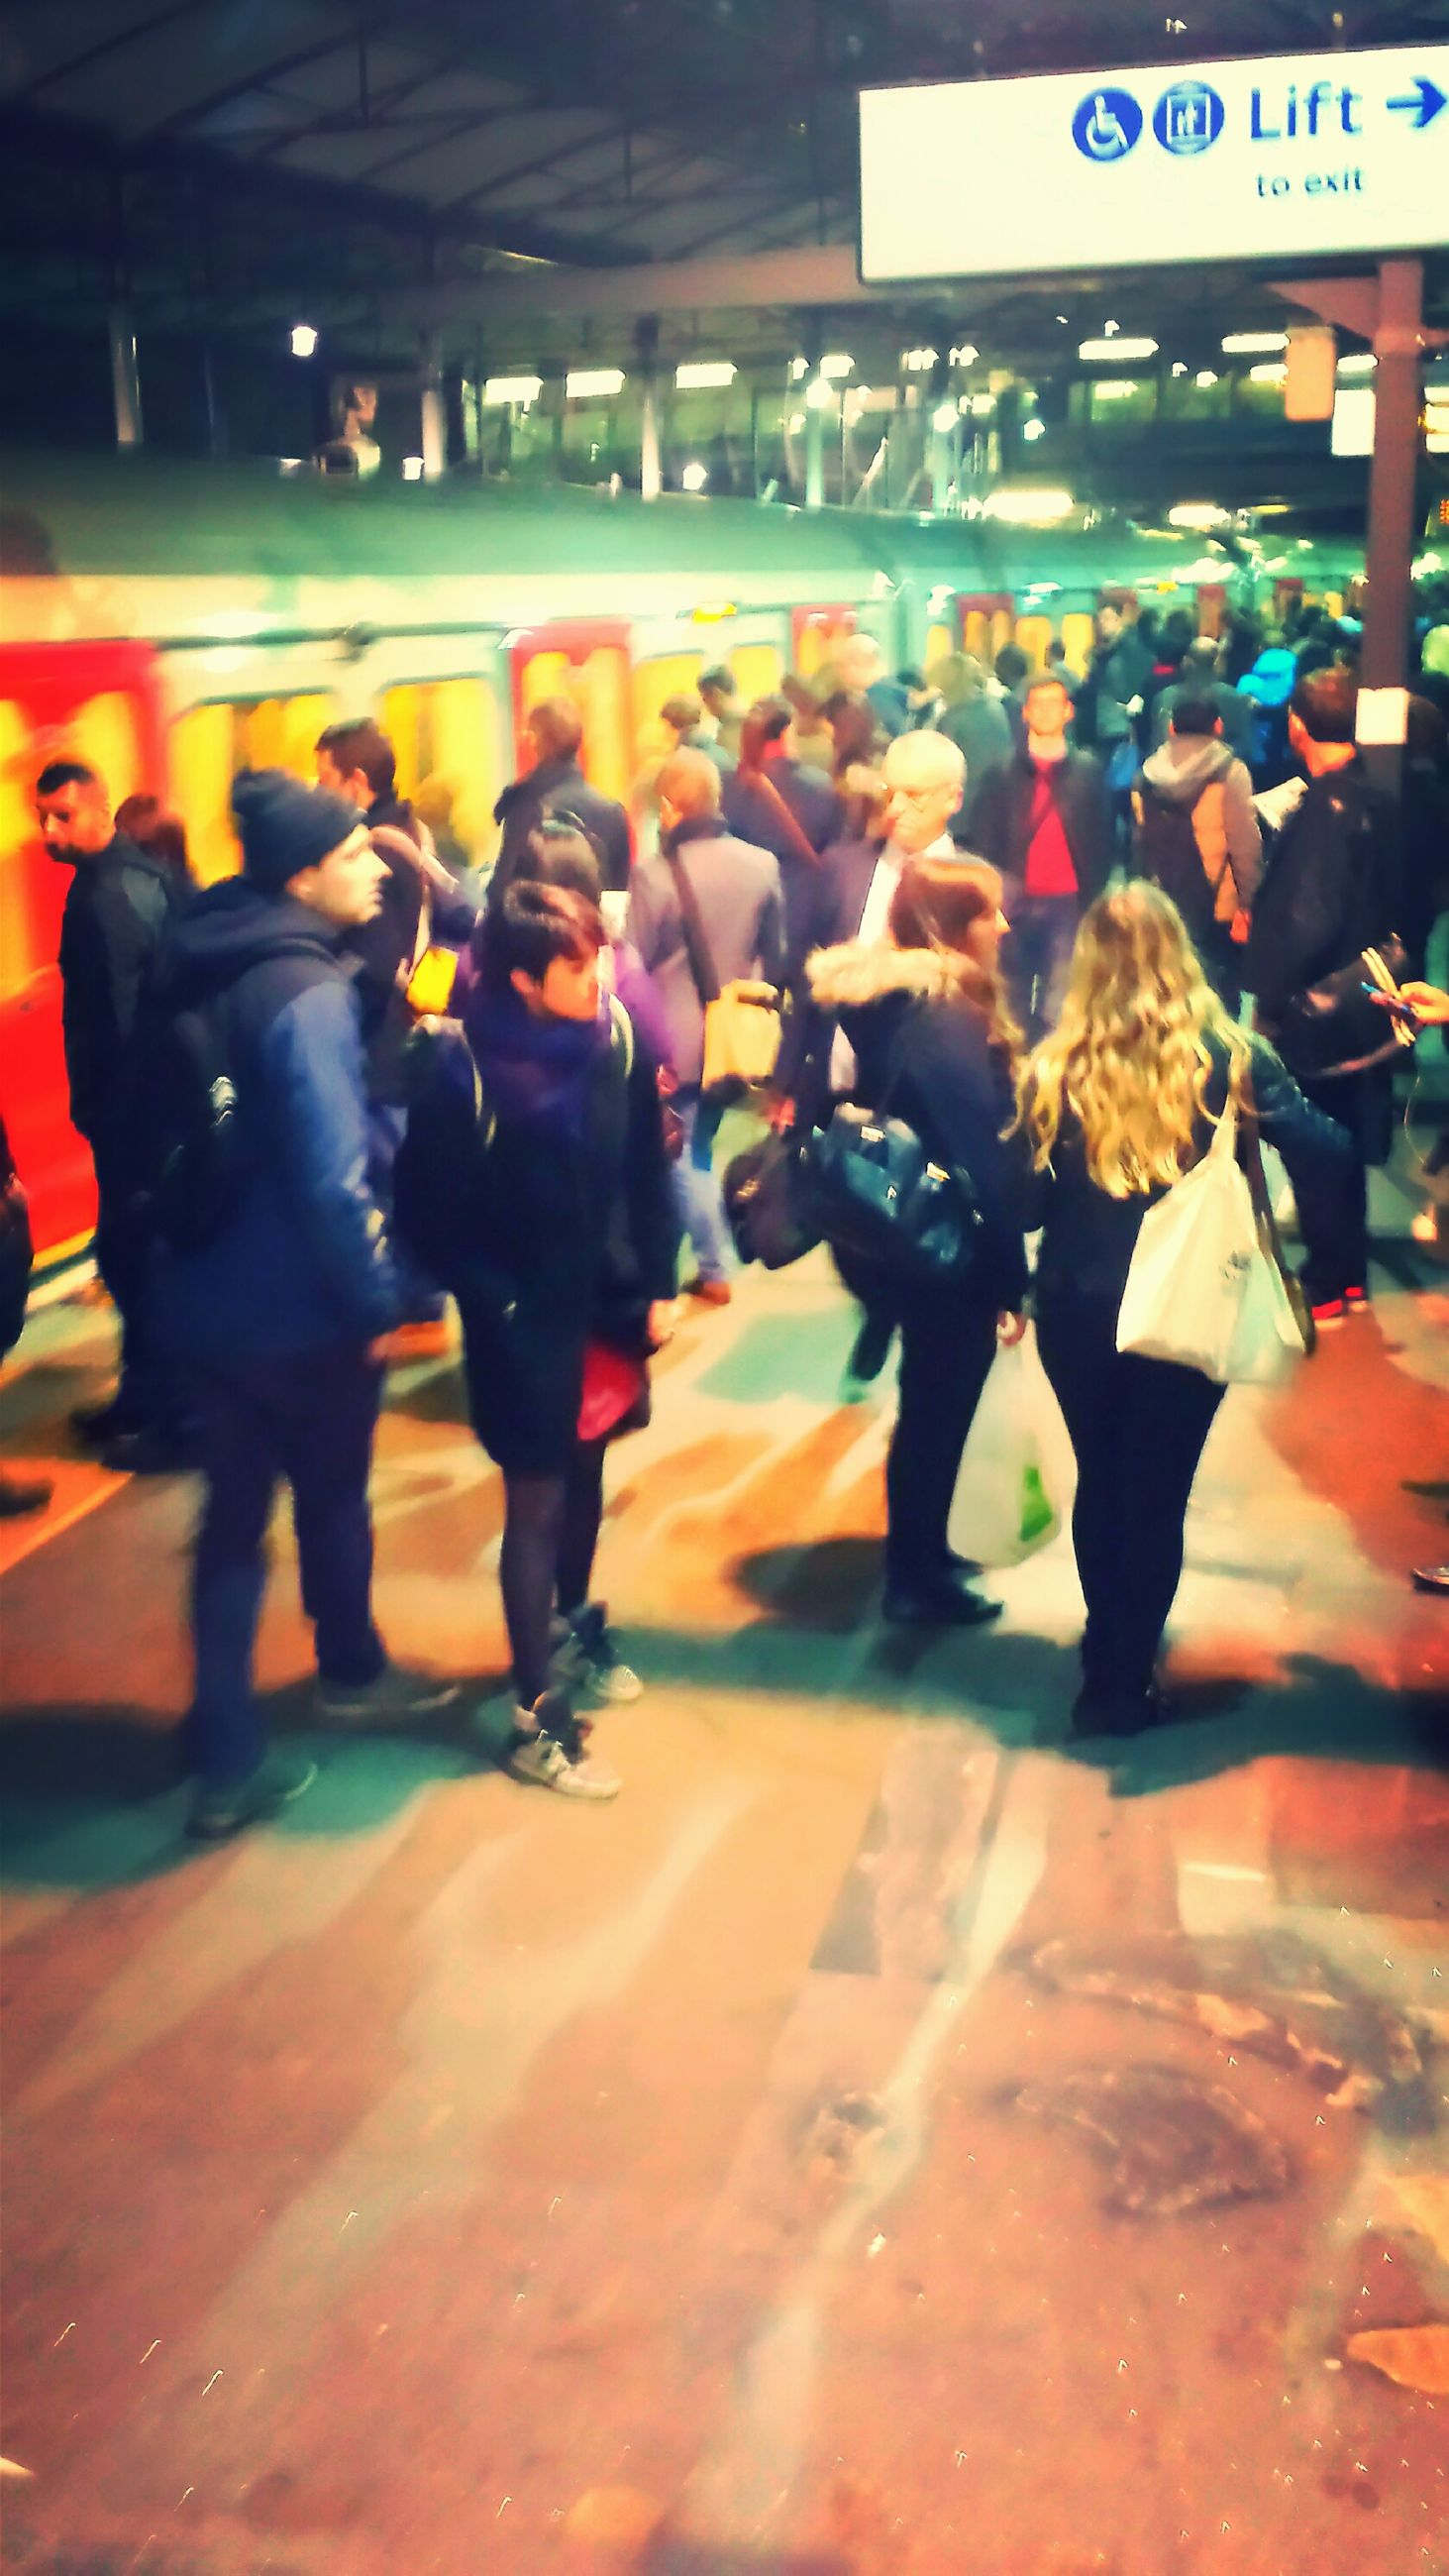 men, lifestyles, person, illuminated, night, leisure activity, large group of people, street, walking, full length, city life, standing, casual clothing, incidental people, city, text, group of people, store, blurred motion